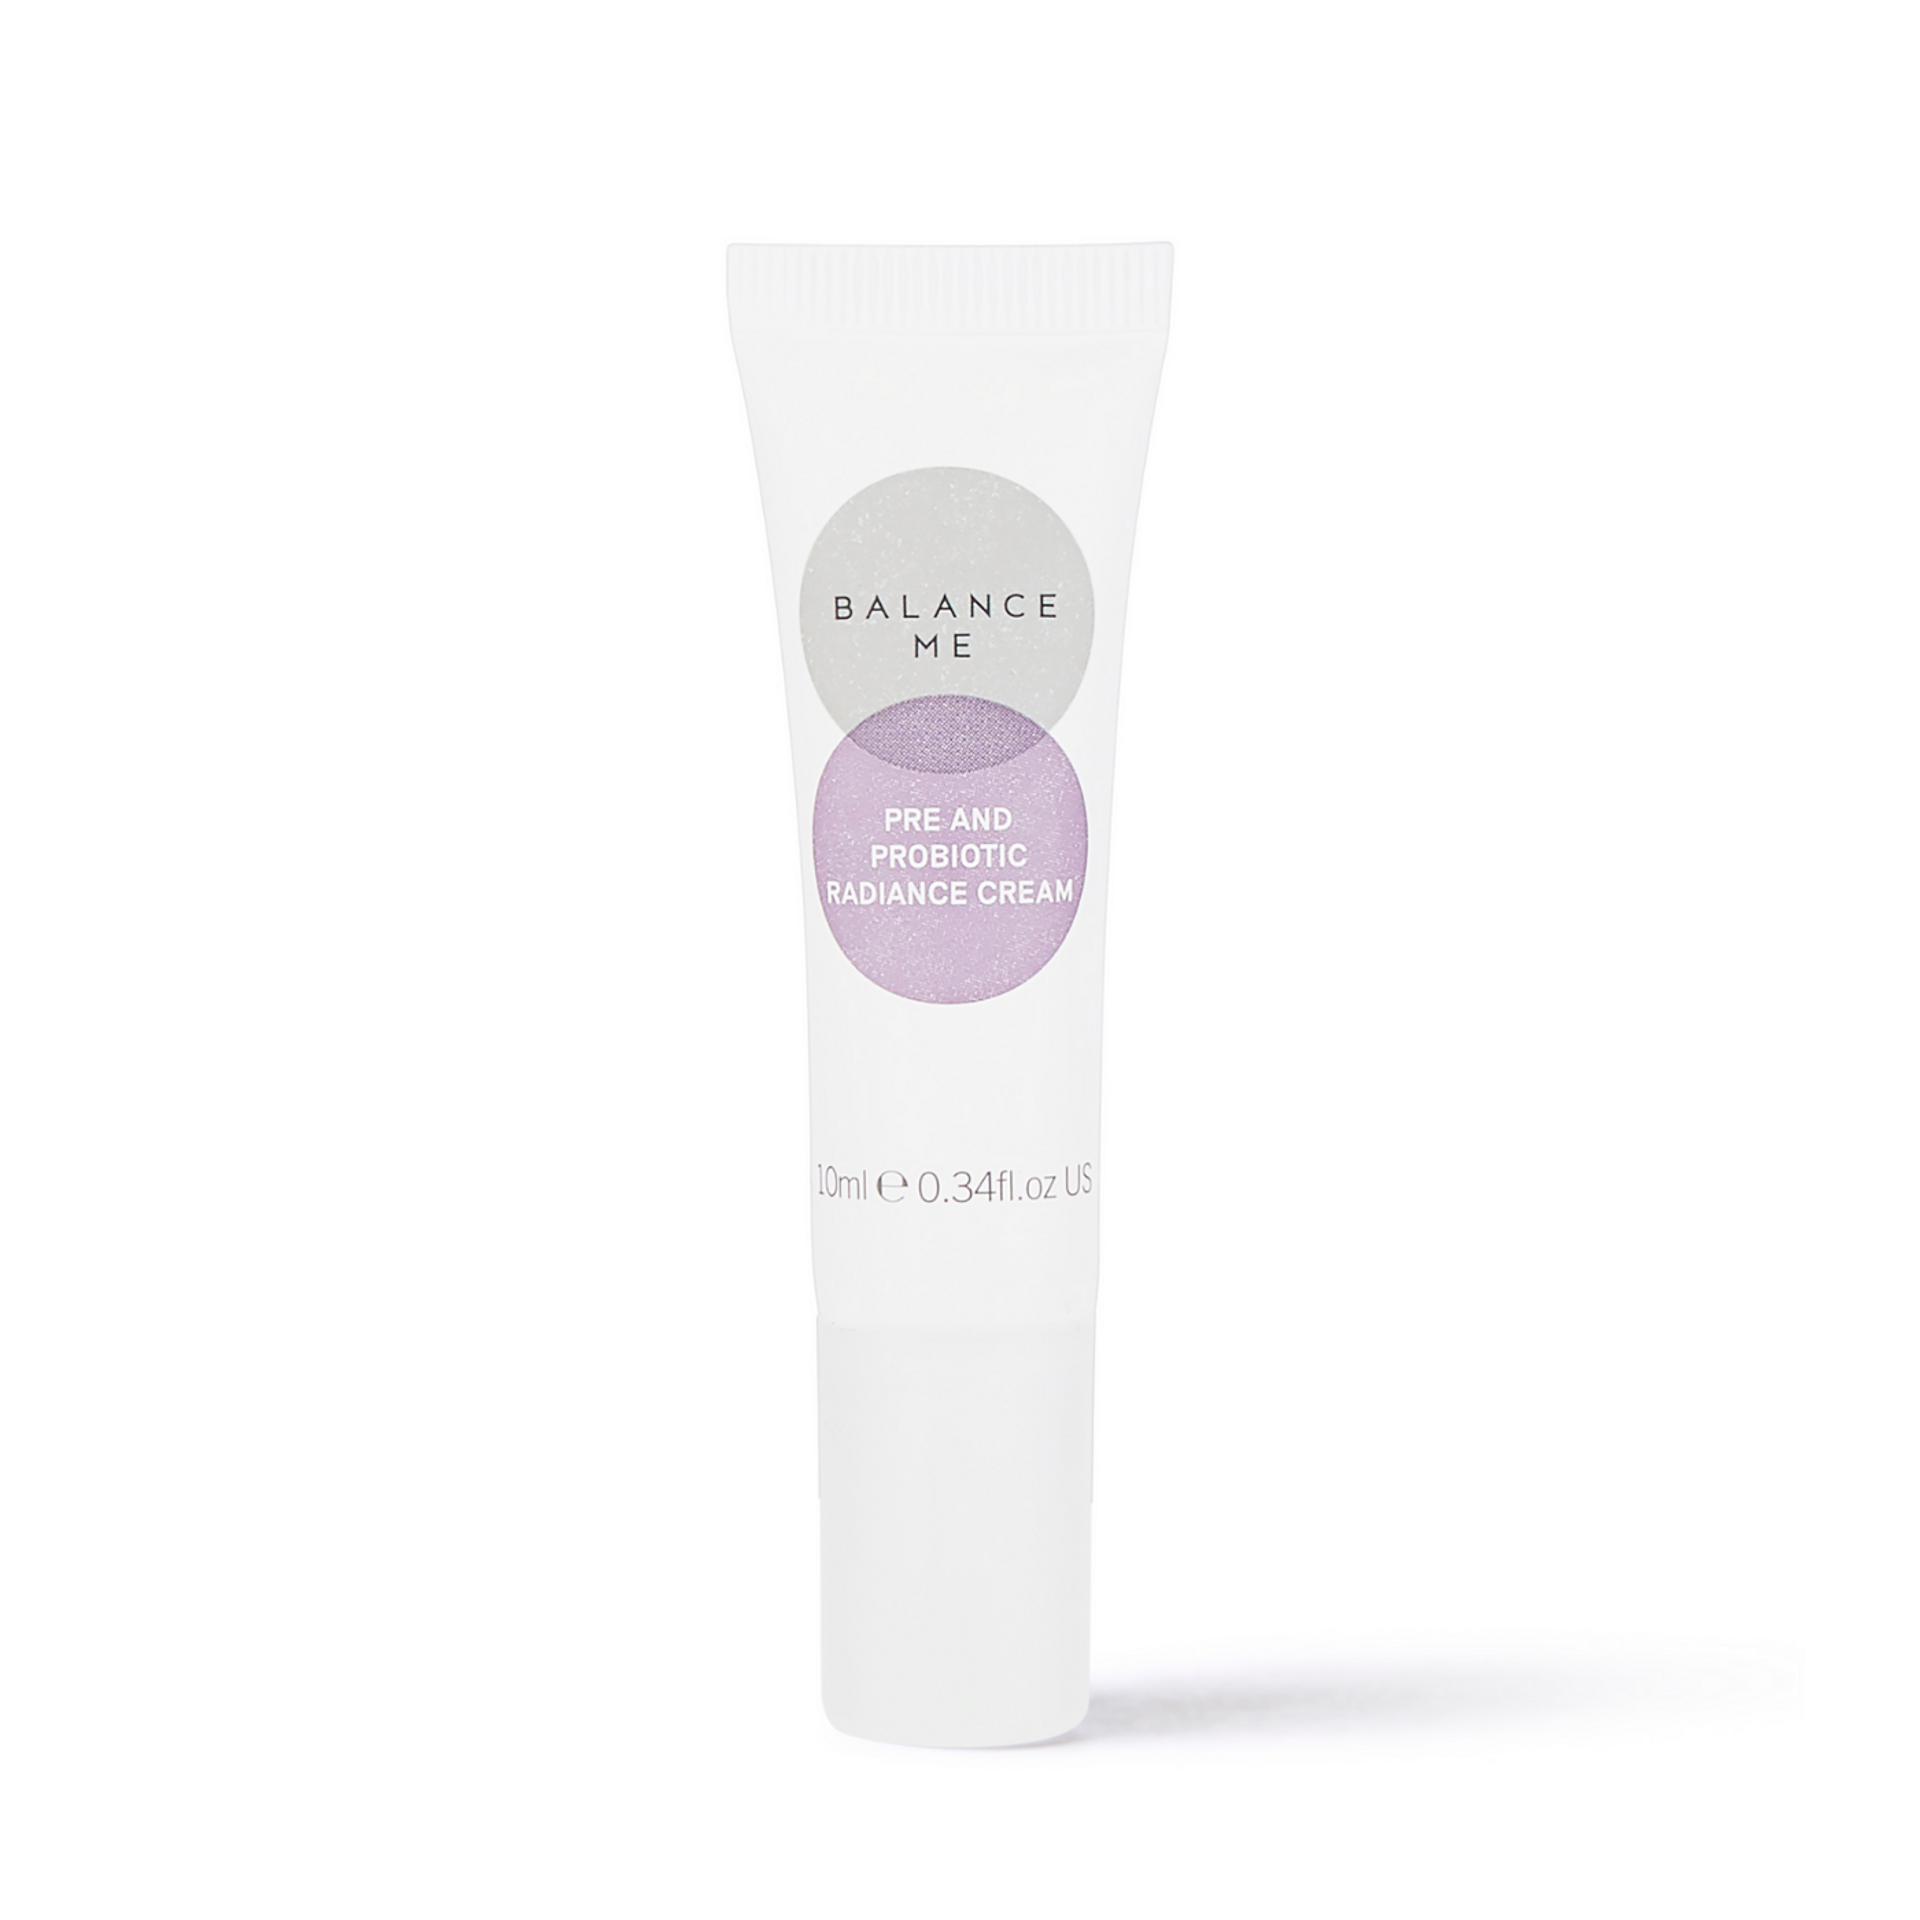 Pre and Probiotic Radiance Cream 10ml